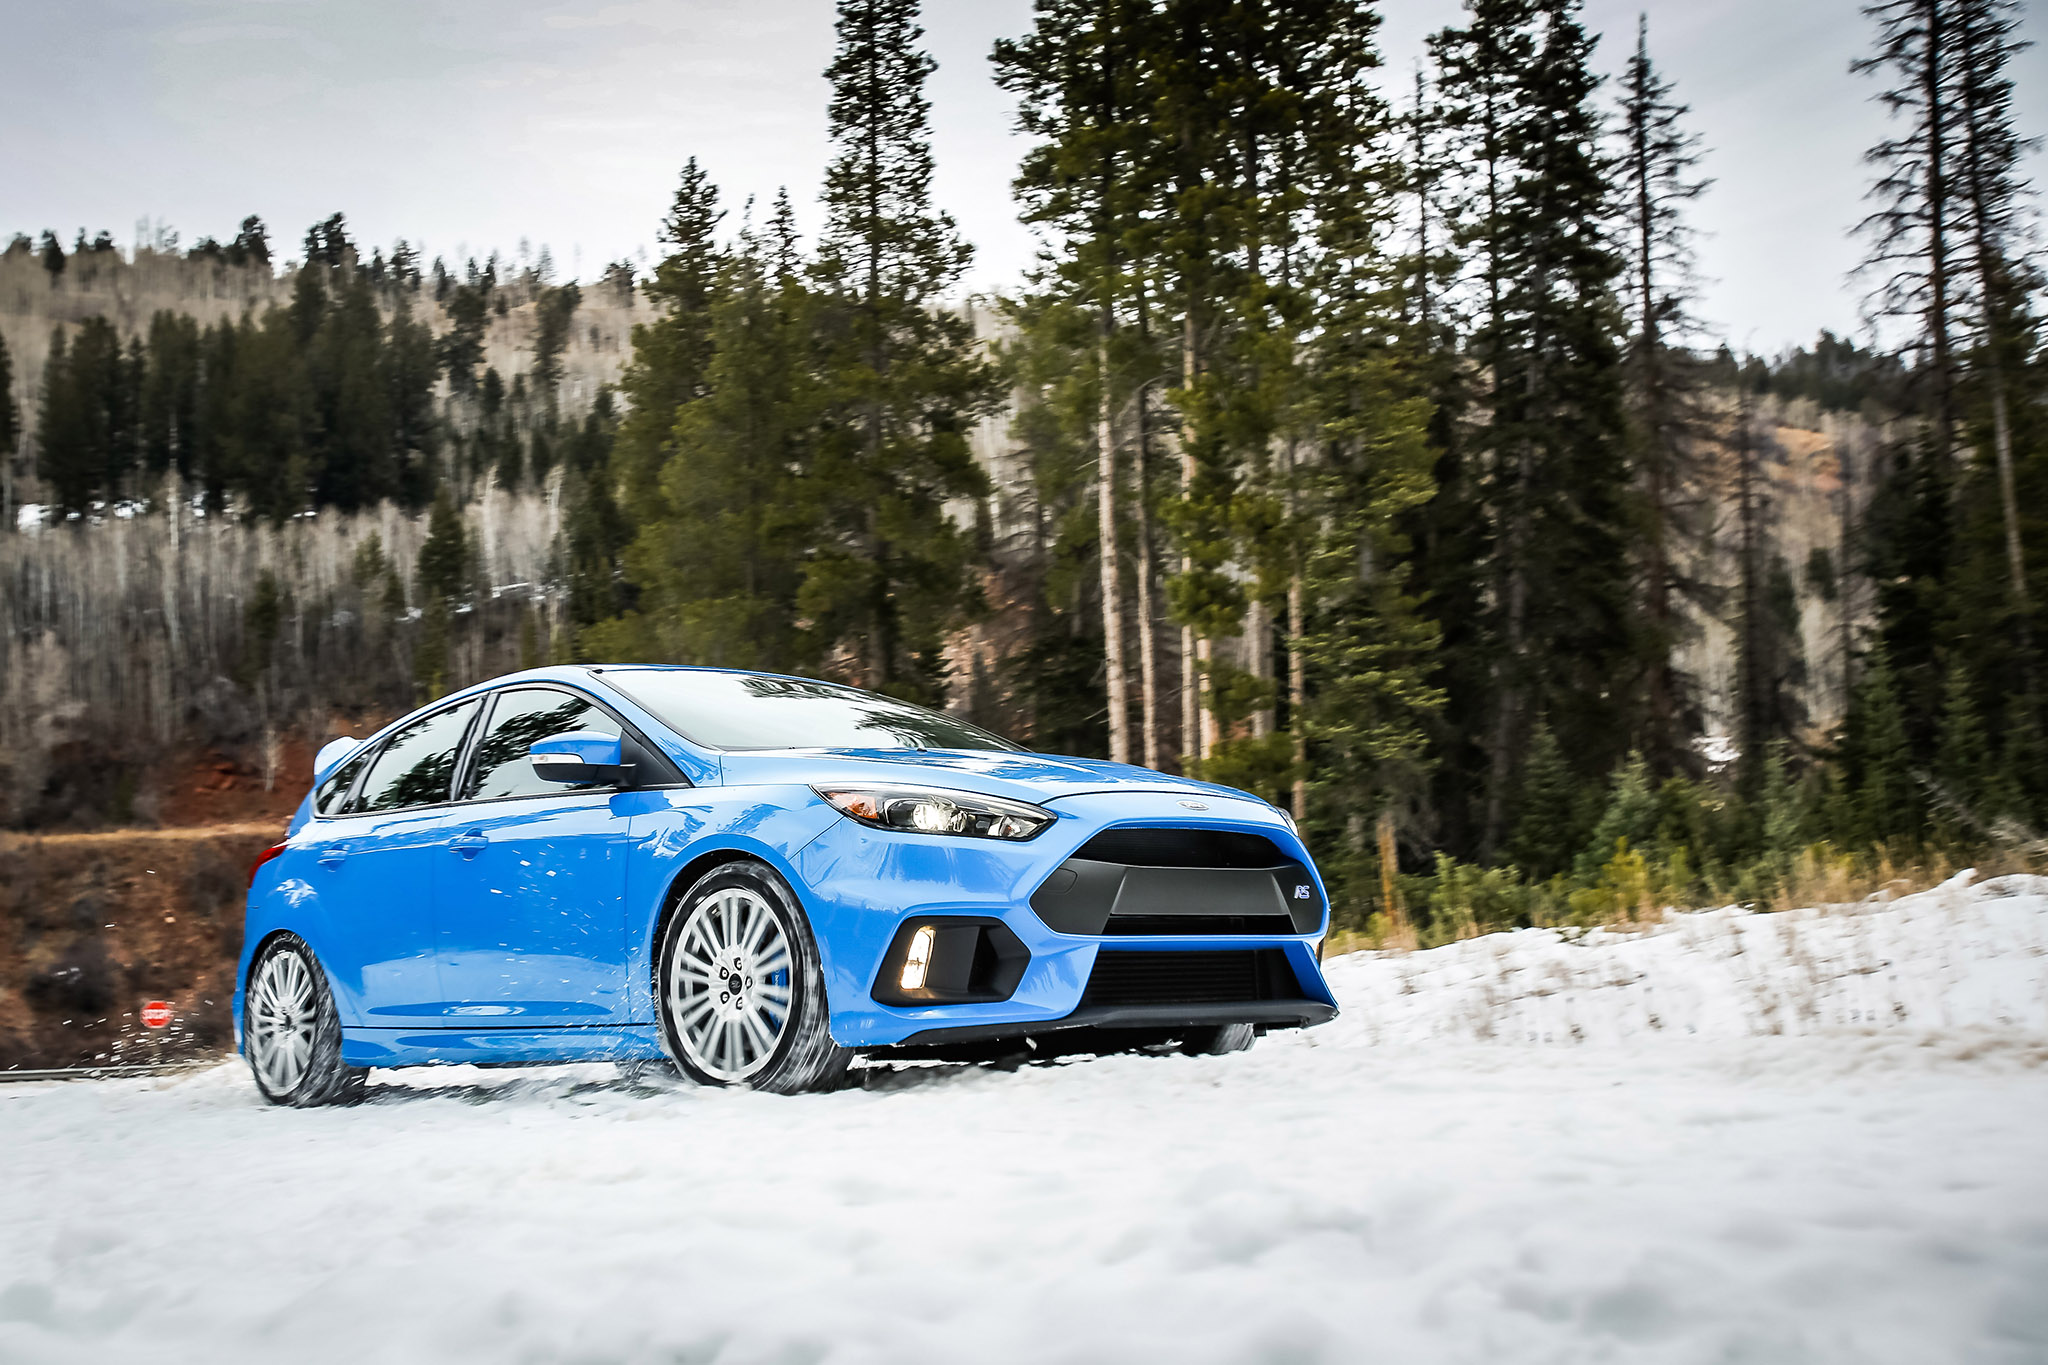 Focus RS Winter Wheels and Tires